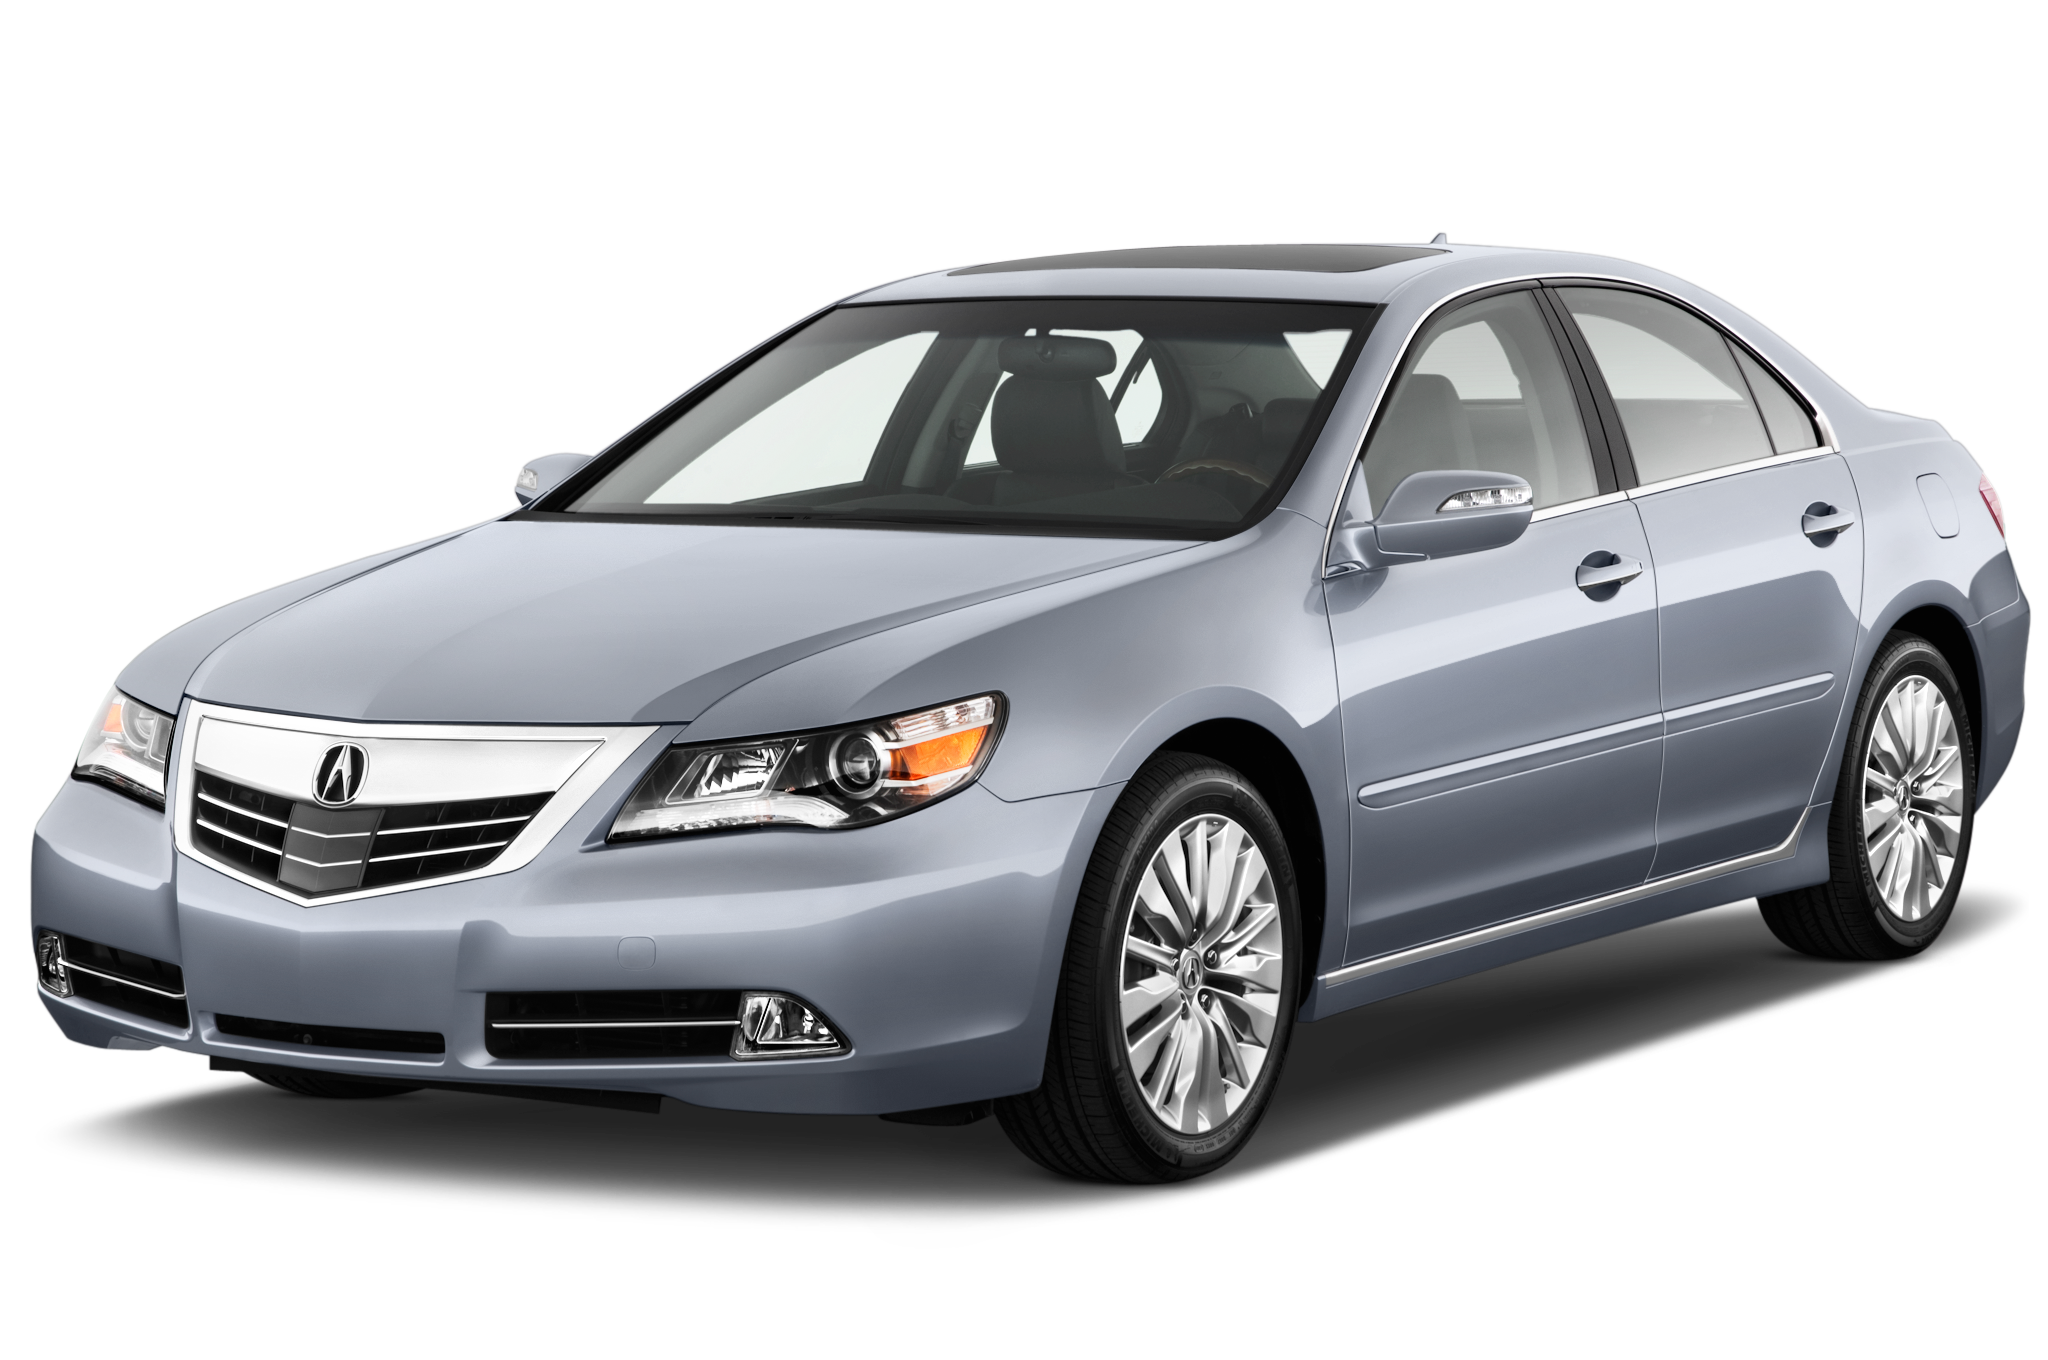 2011 acura rl reviews and rating motor trend rh motortrend com 2010 Acura MDX 2011 Acura MDX White